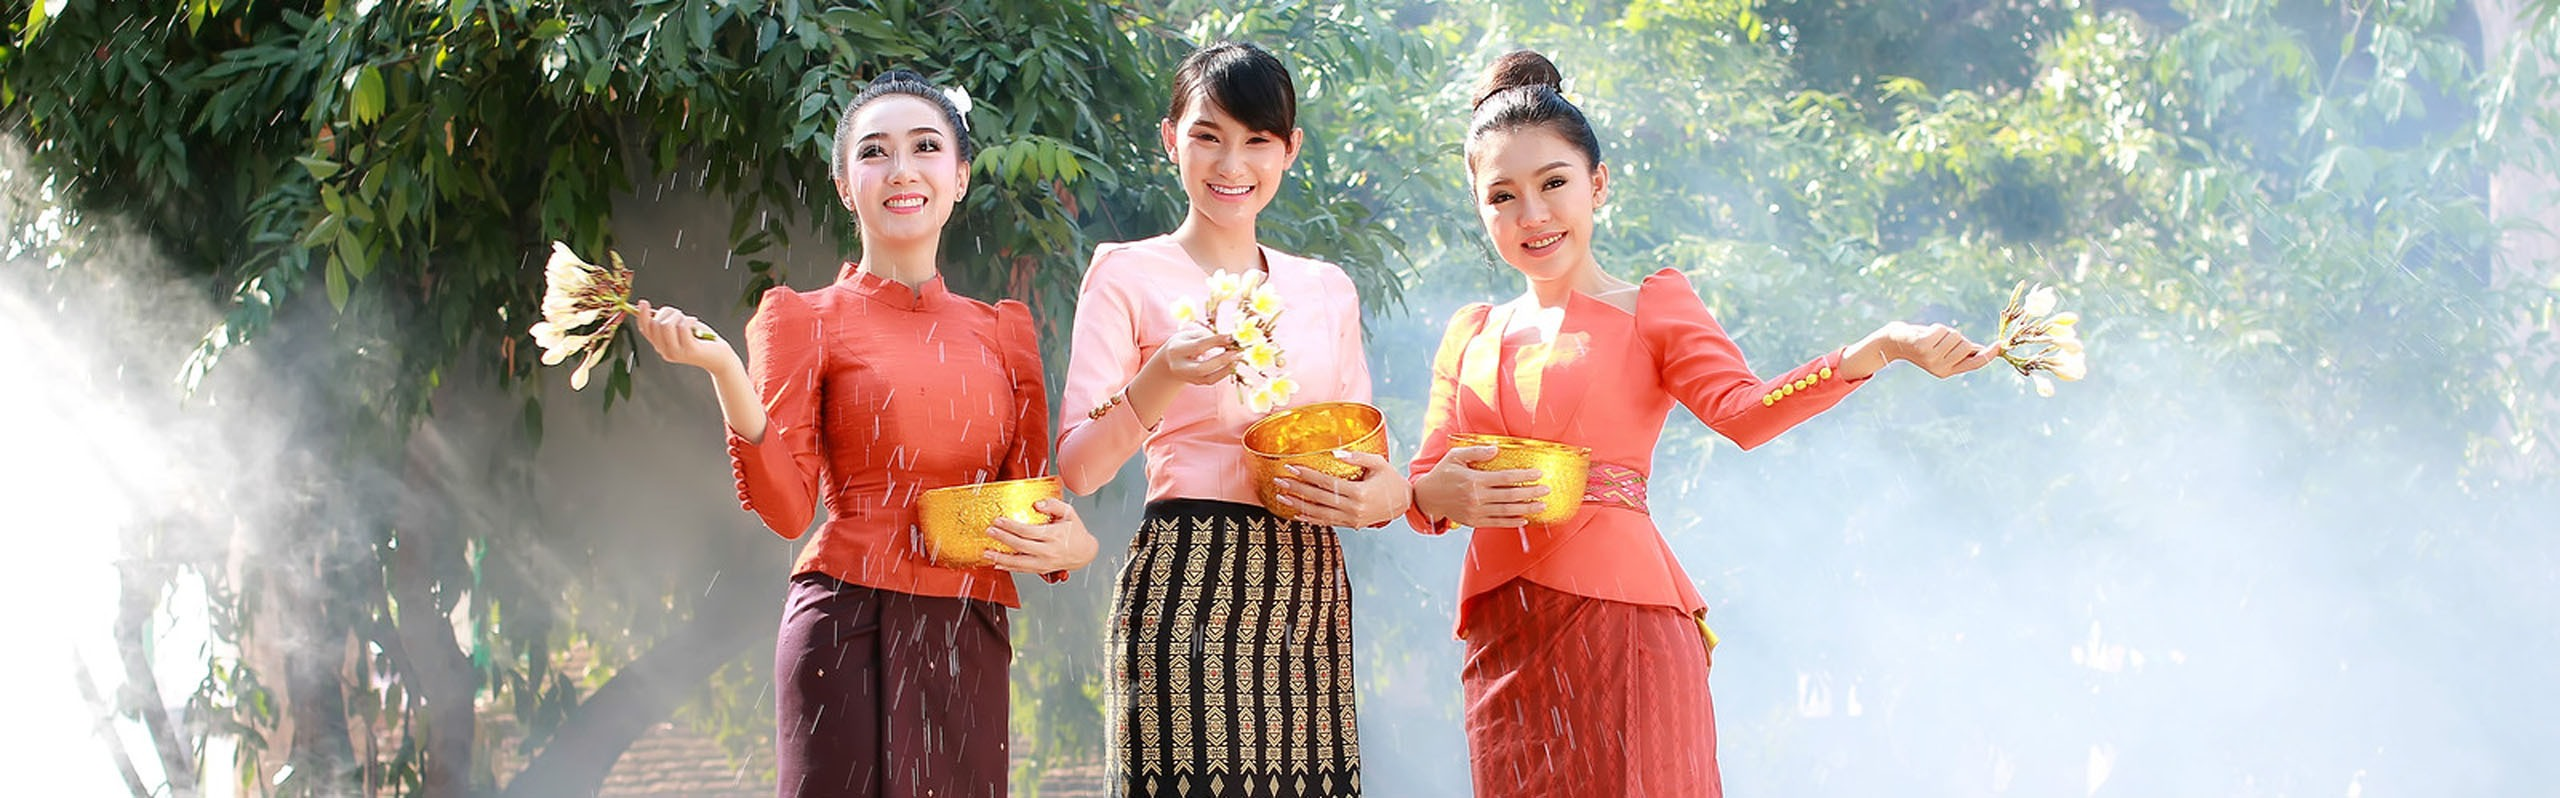 Songkran Festival - the Thai New Year 2020